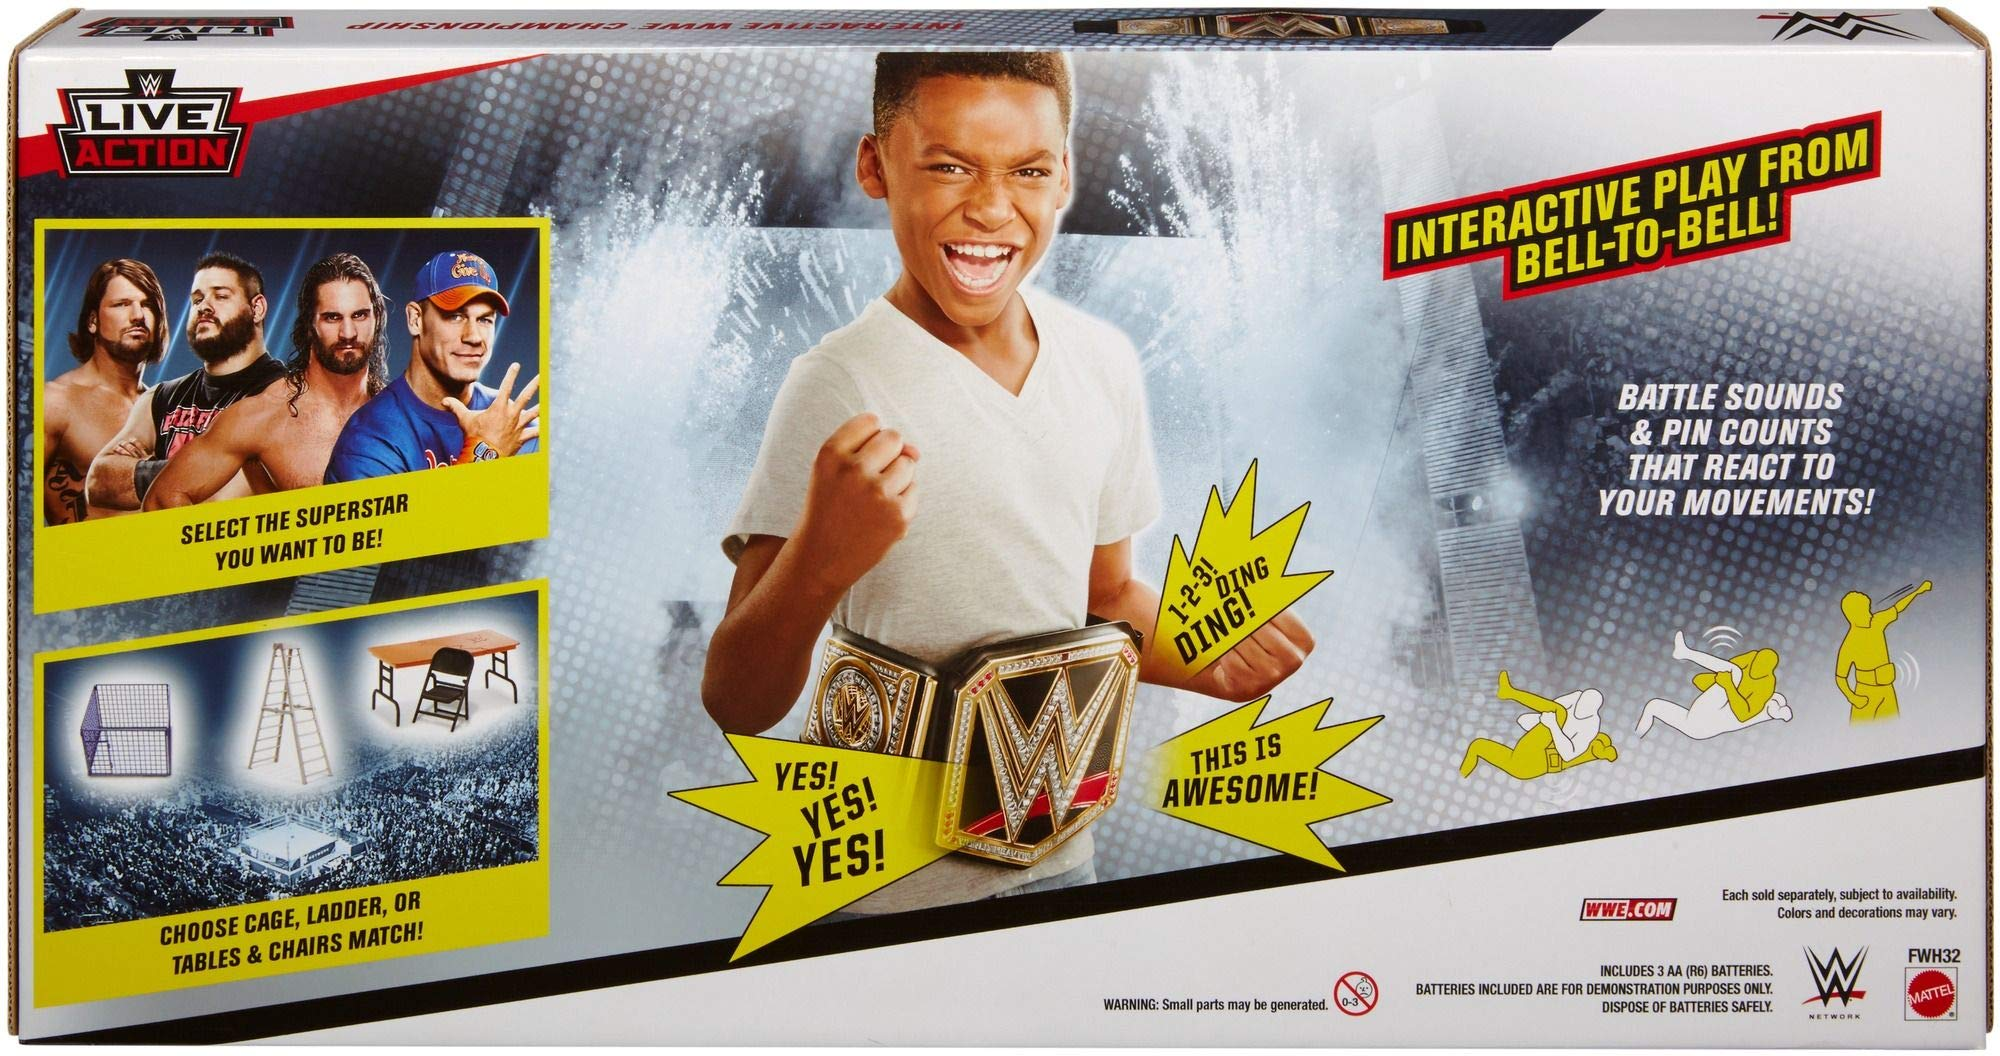 WWE Live Action Interactive Championship Playset by WWE (Image #7)